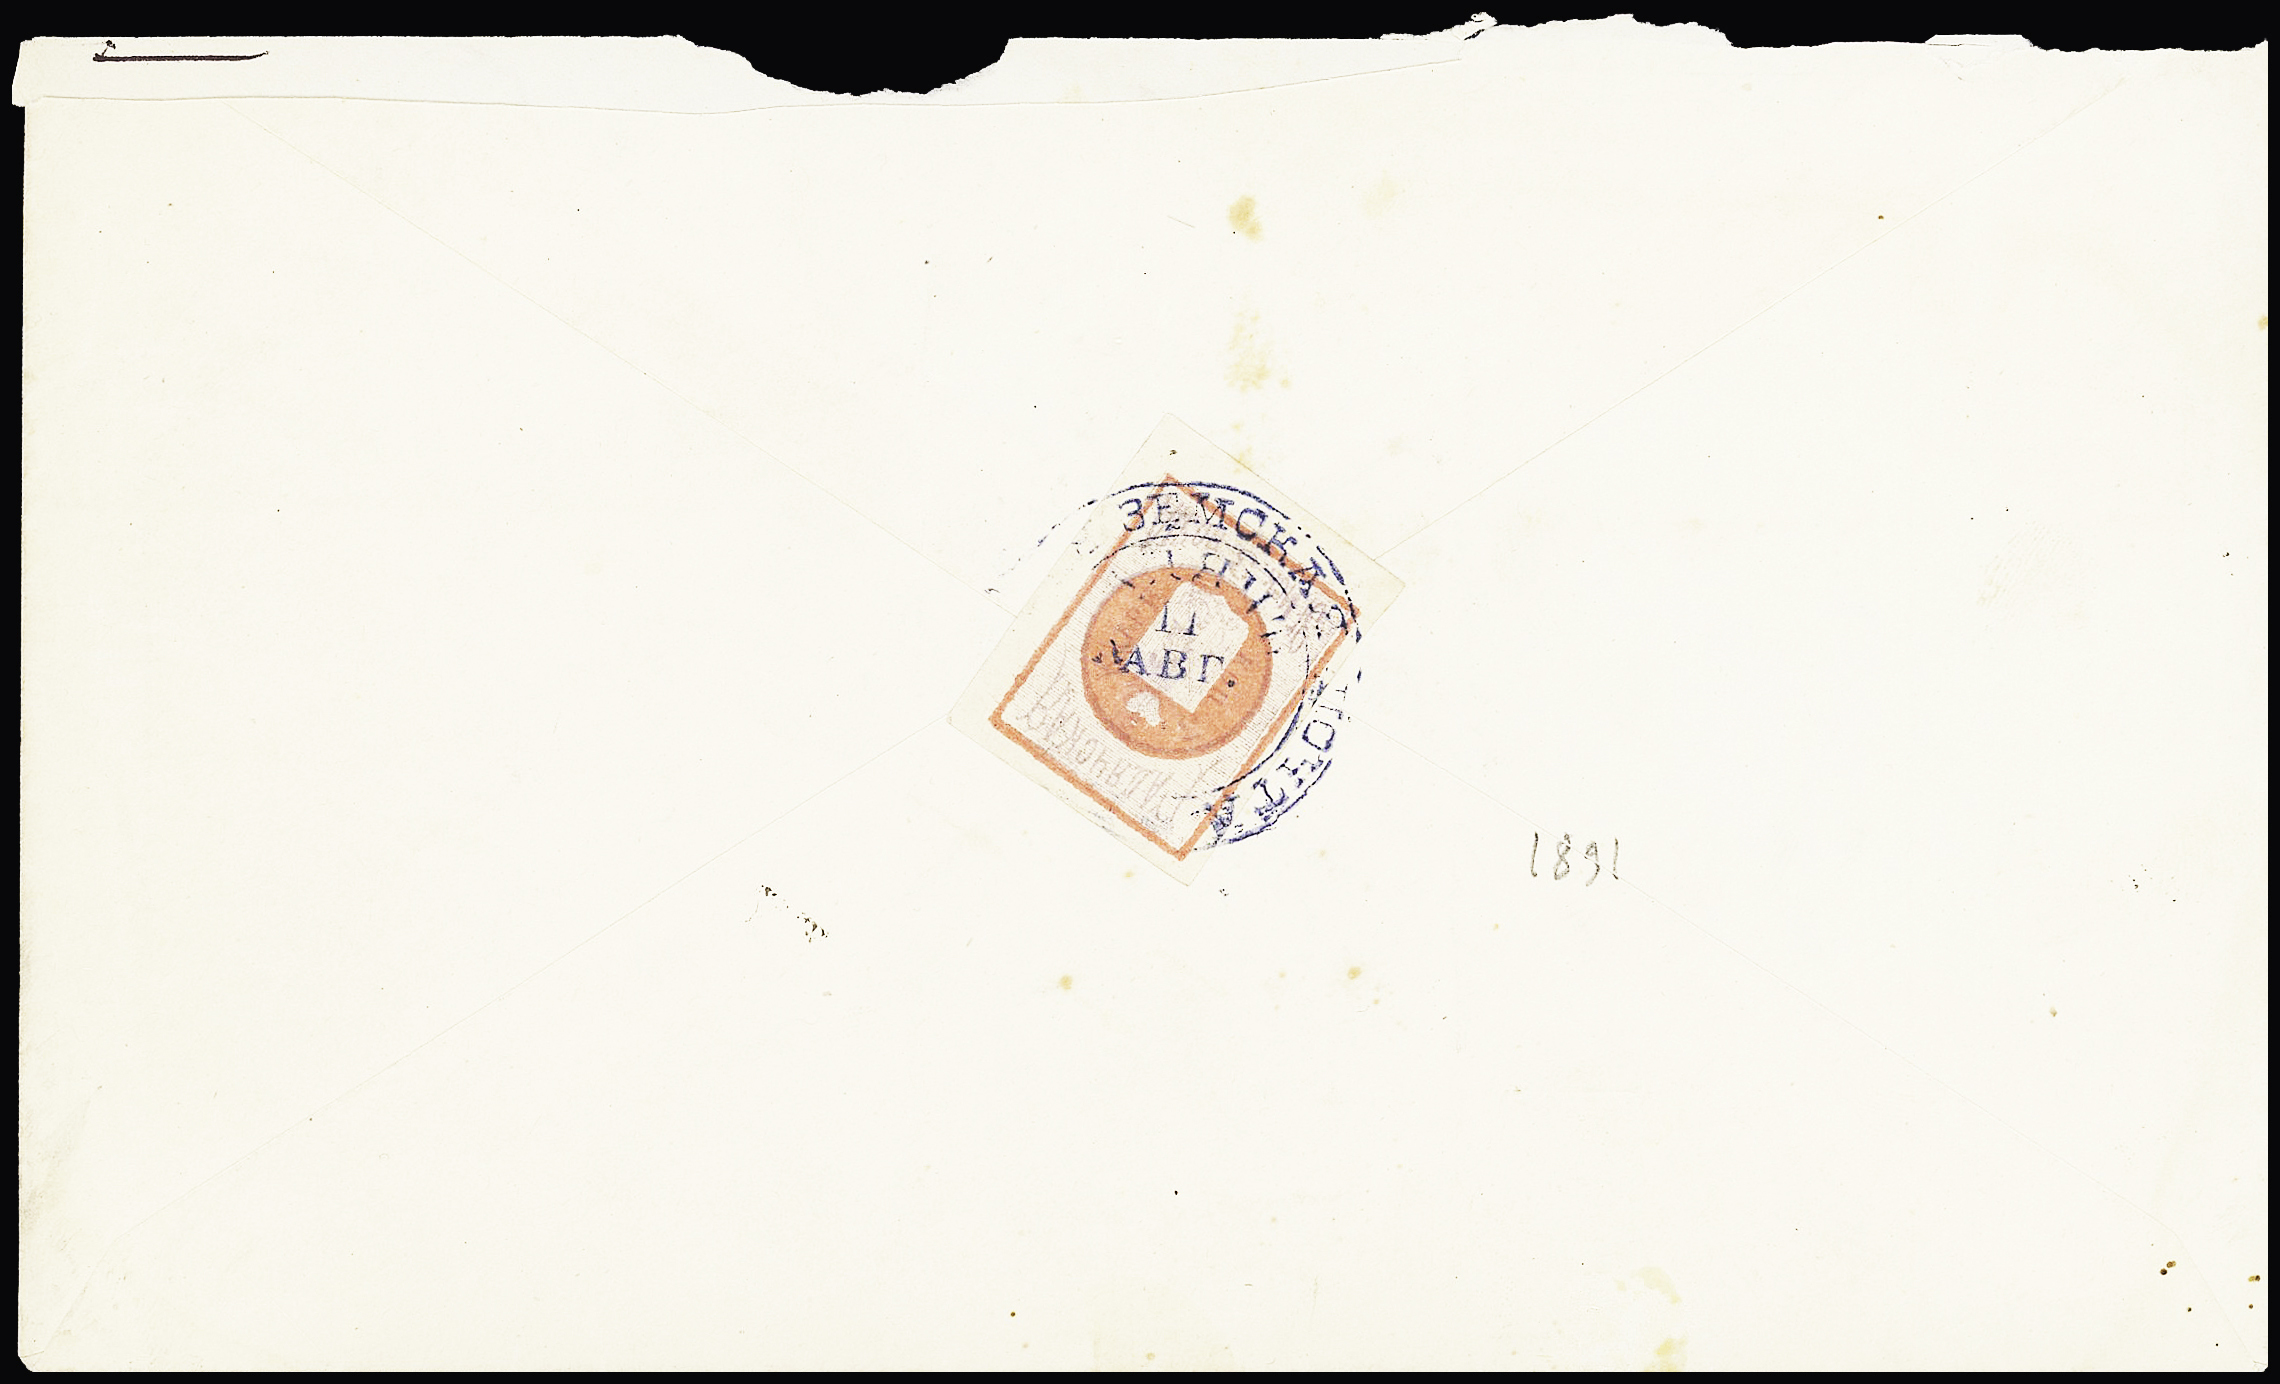 Lot 444 - Eastern Europe » RUSSIA - ZEMSTVOS » Gadiach  (Poltava Government)  -  Le Timbre Classique SA SALE ON OFFERS N ° 37 PARIS